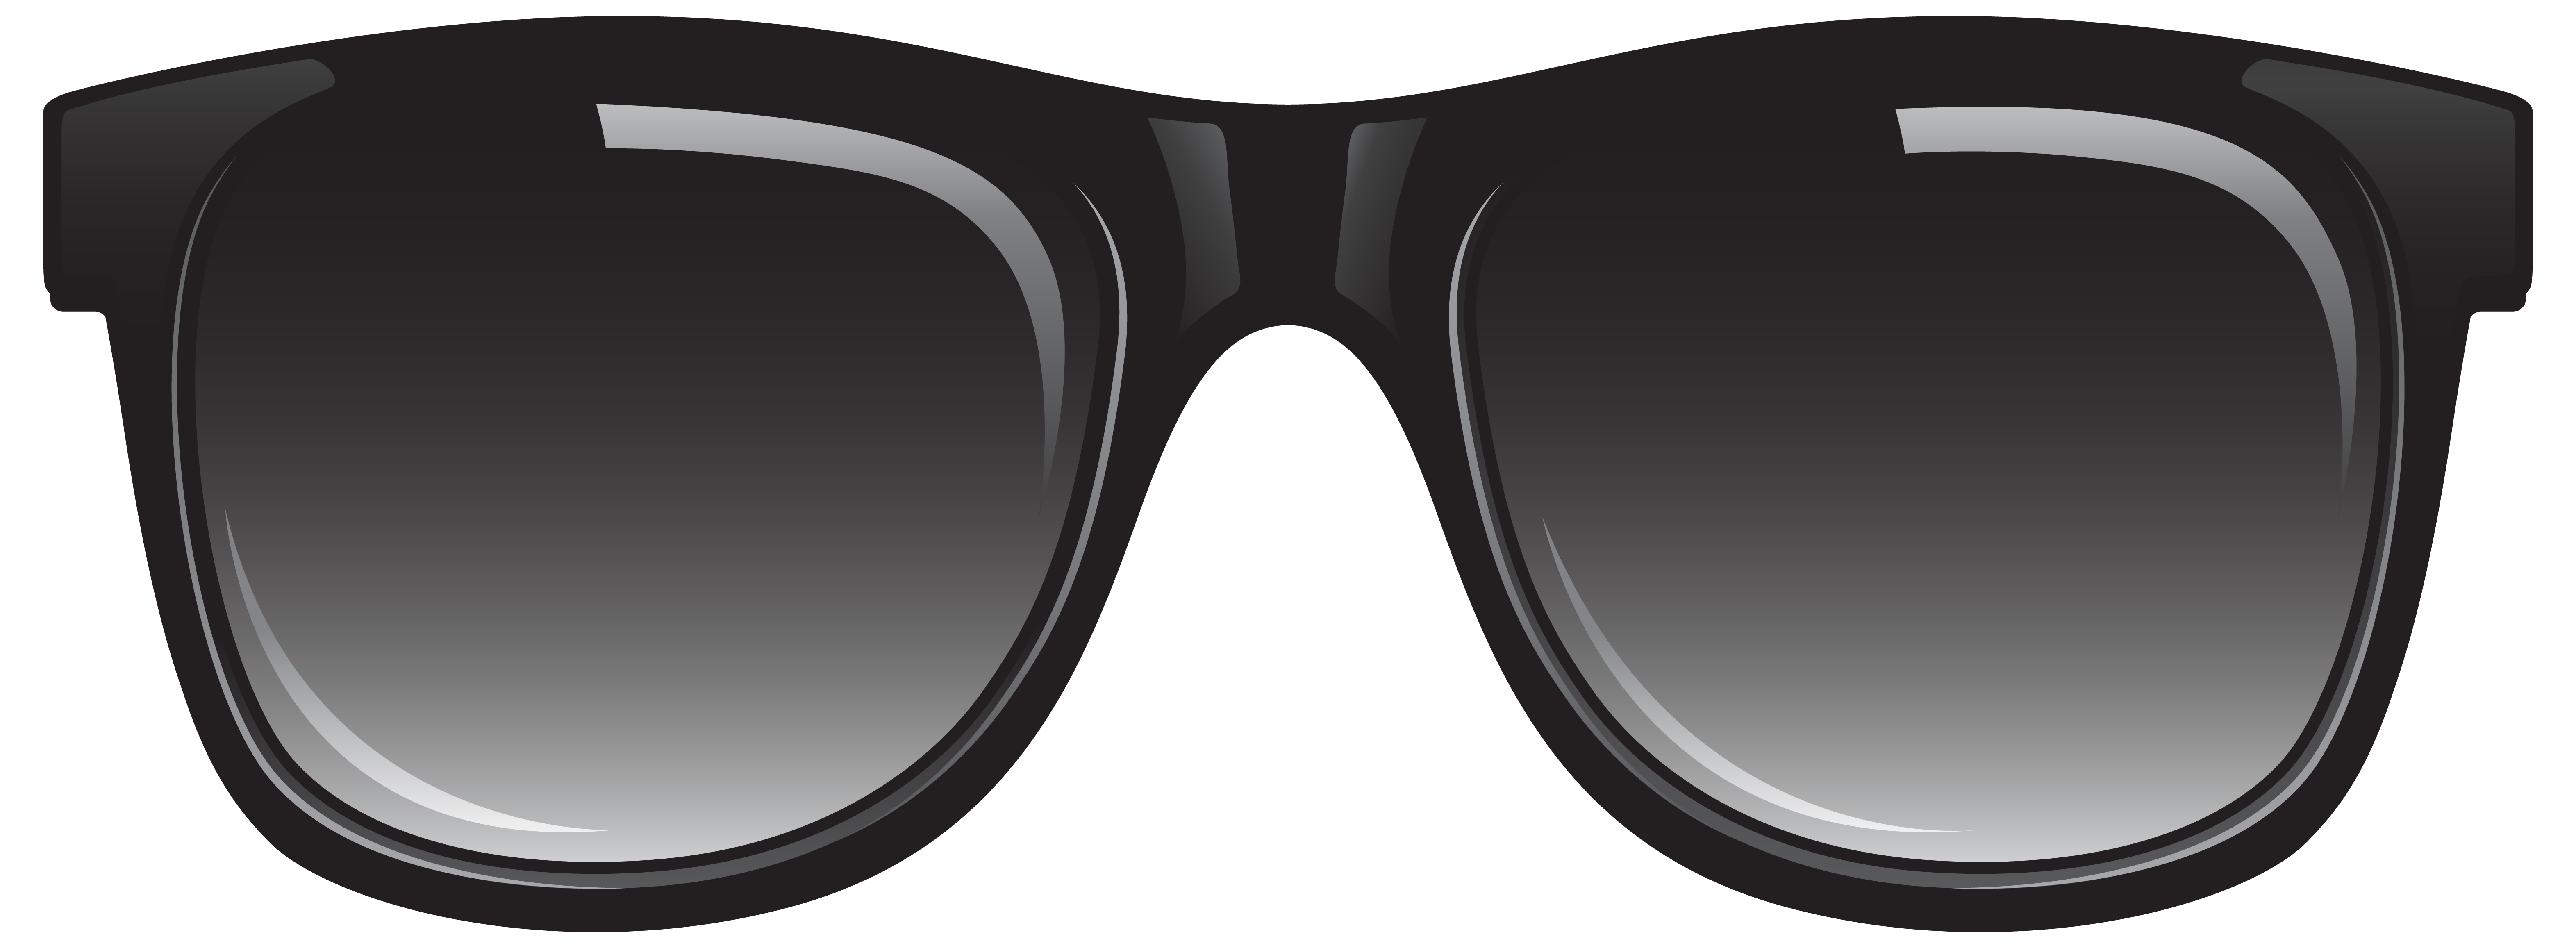 collection of goggles. Eyeglasses clipart shades